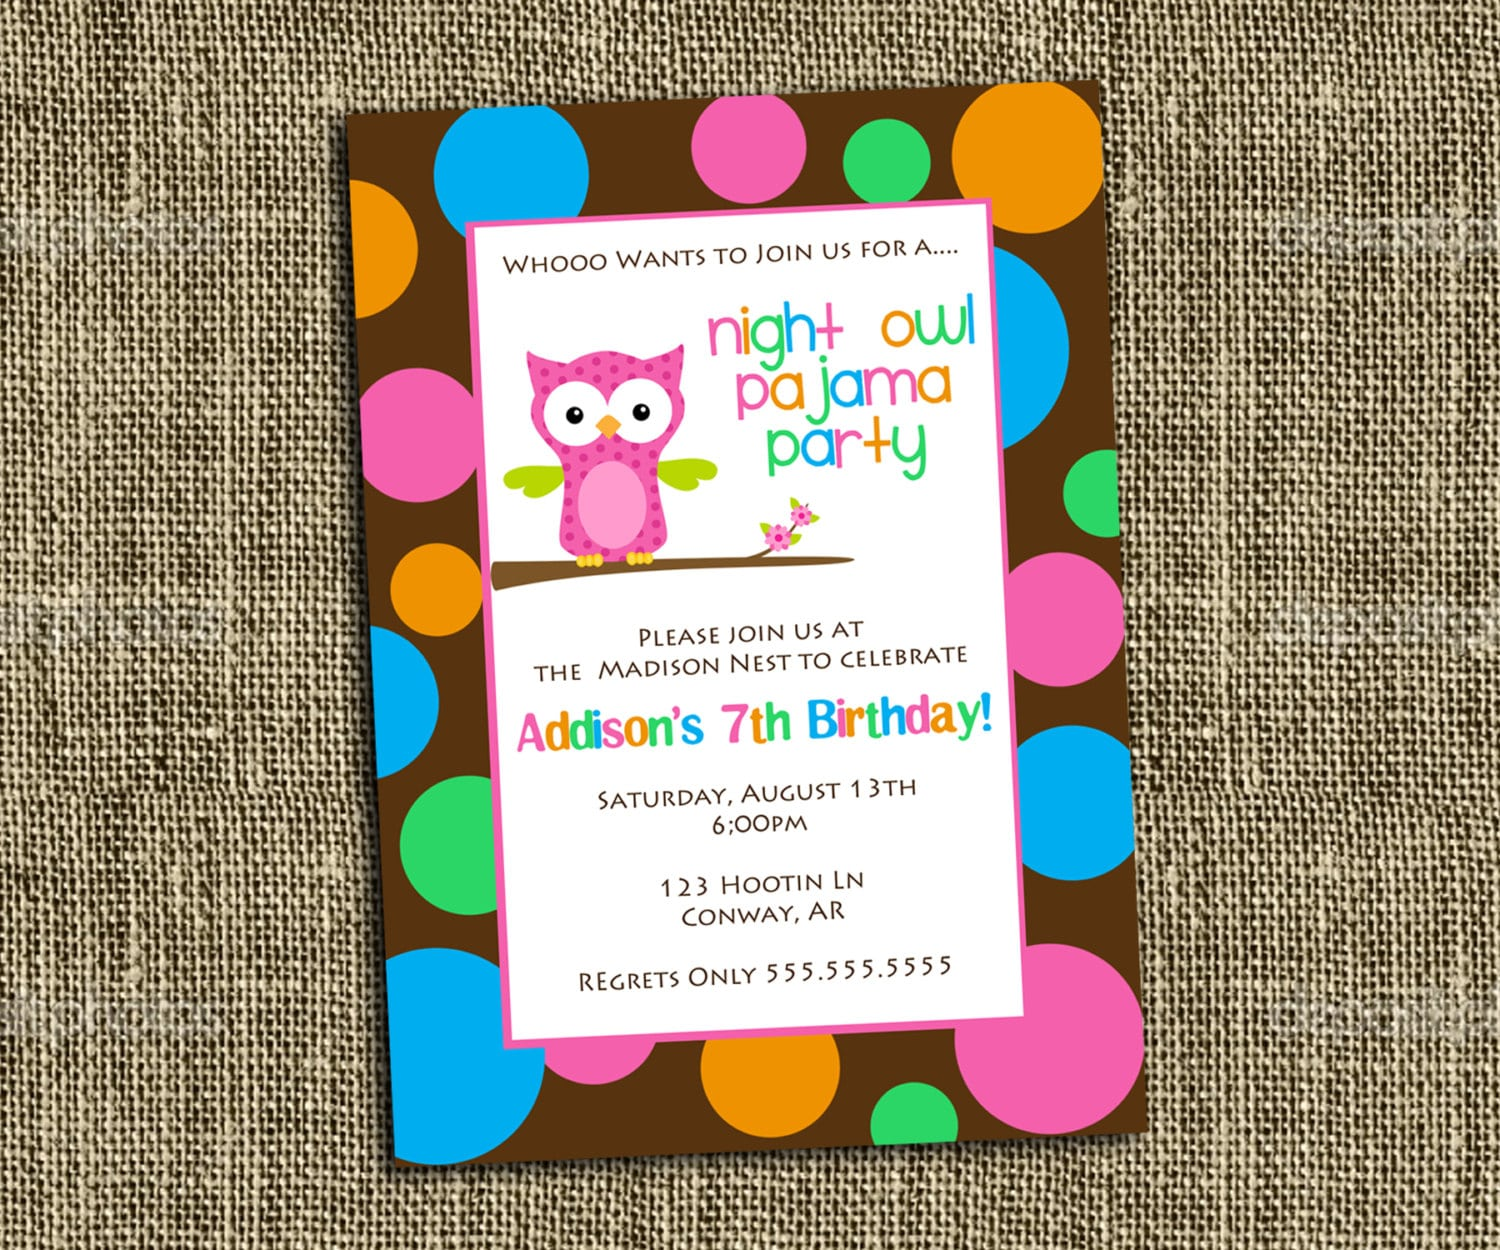 17 Best Images About Party Invitations On Pinterest